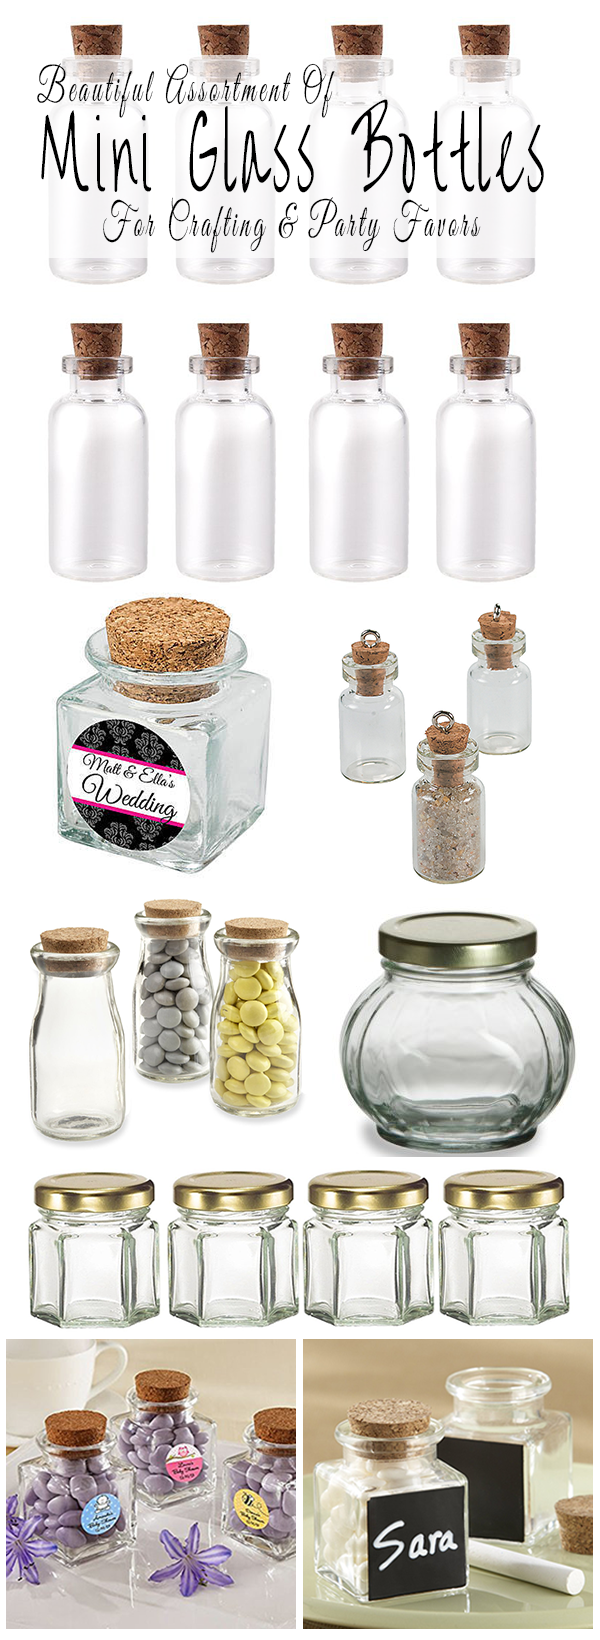 Where To Buy Mini Glass Bottles For Crafting And Party Favors ...